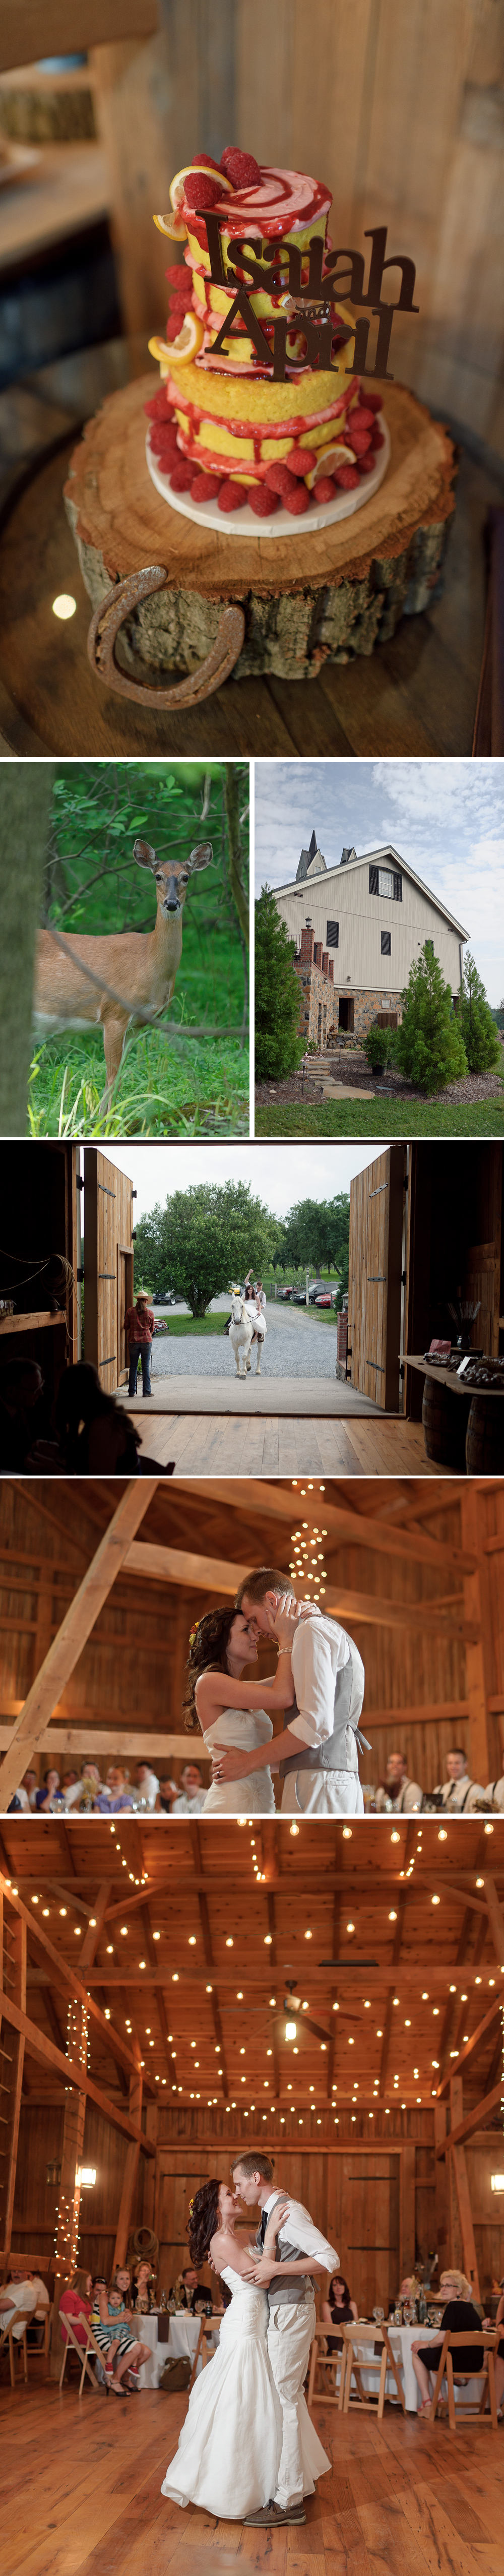 Ironstone Ranch Wedding Photography by Jeremy Bischoff